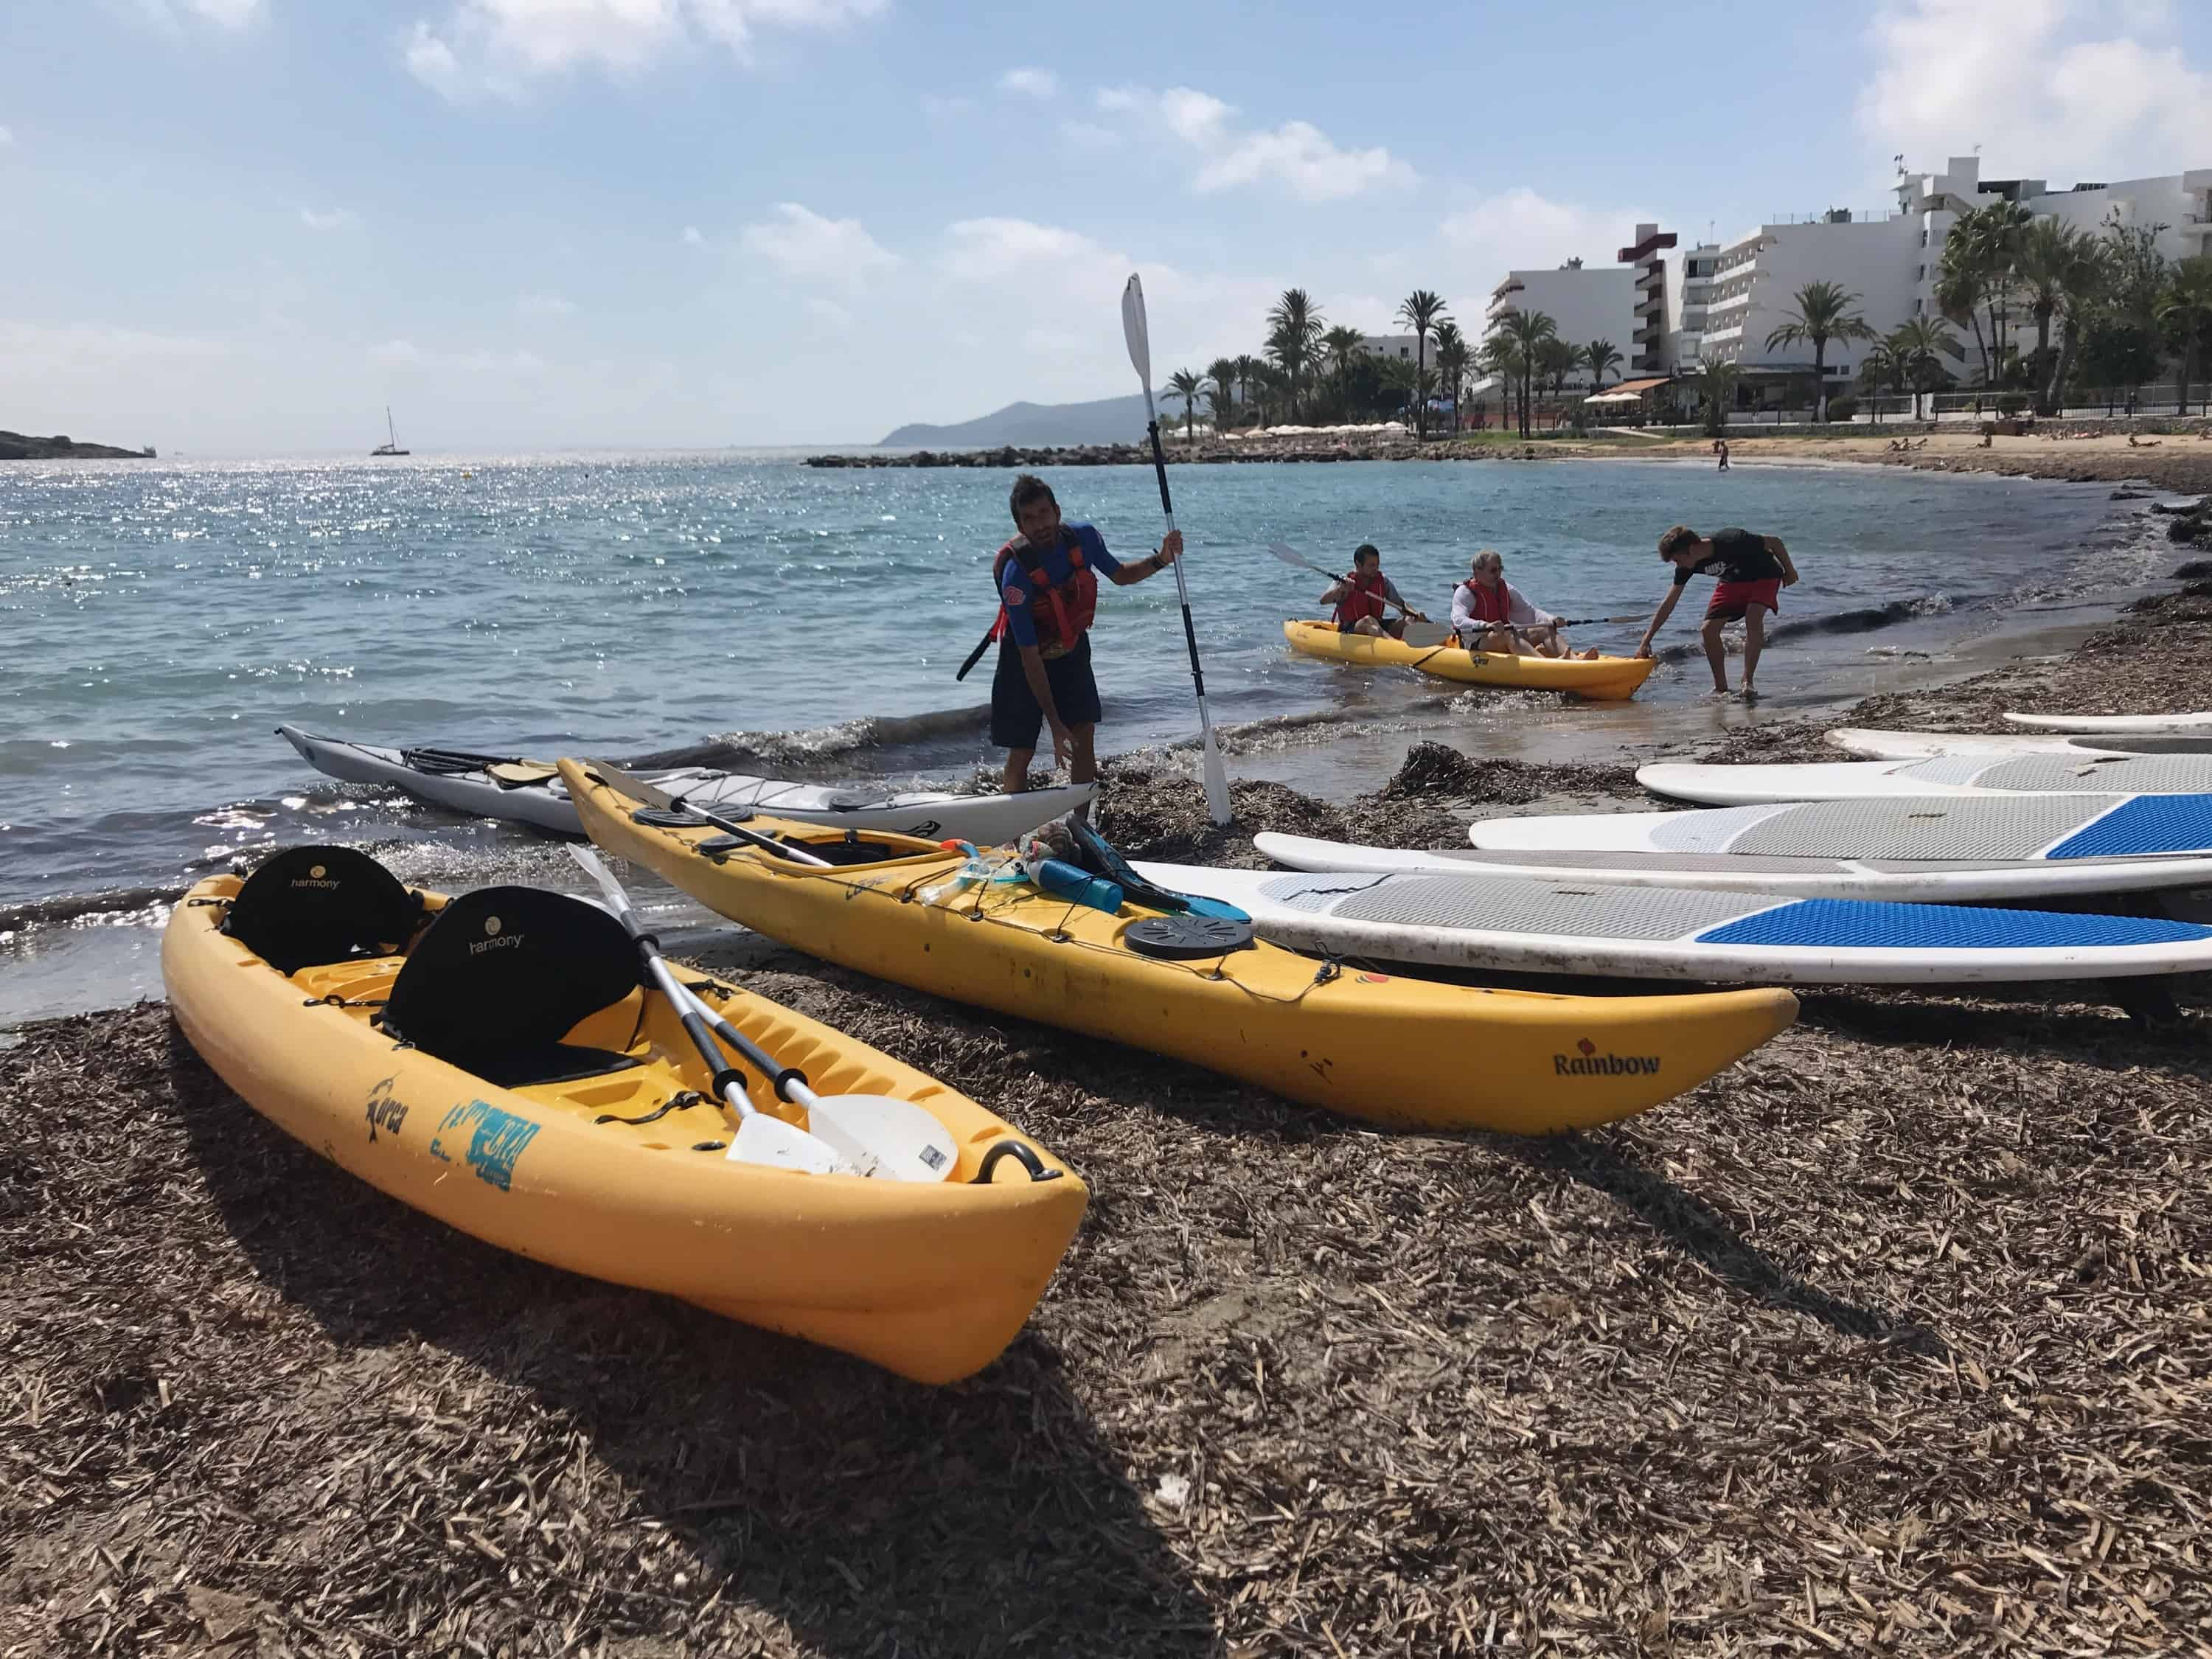 Getting ready to kayak and snorkel through Ses Salines Posidonia. Photo by Erik R. Trinidad.